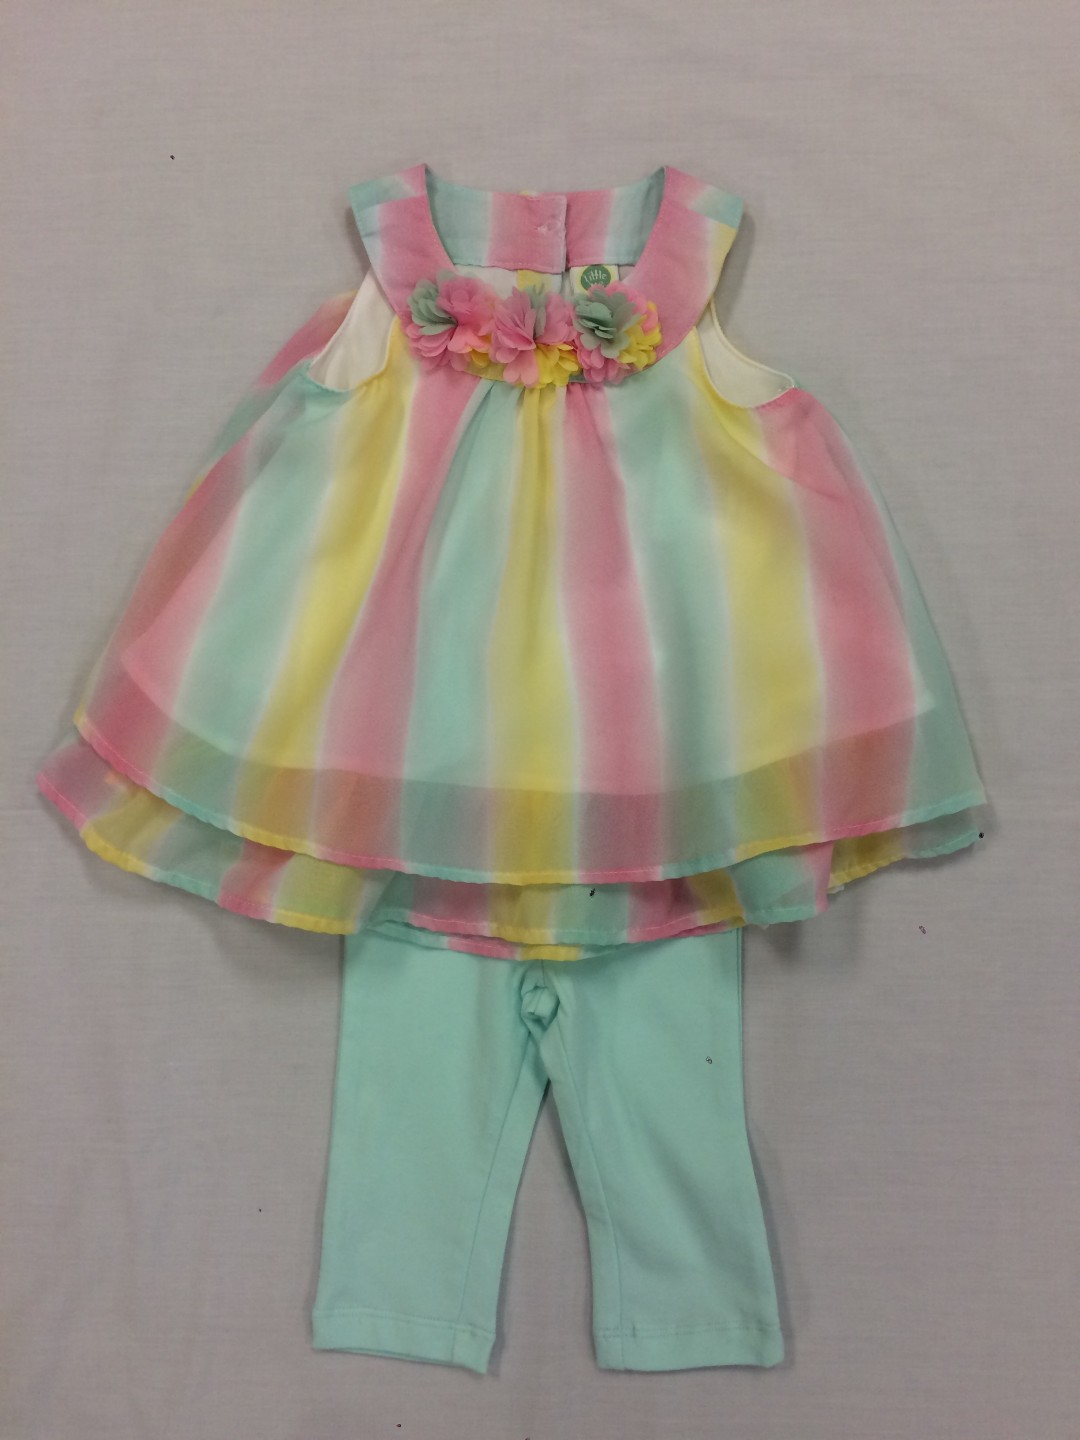 LITTLE ME STRIPED PASTEL 2-PIECE SET SIZES 18 MONTHS-3T